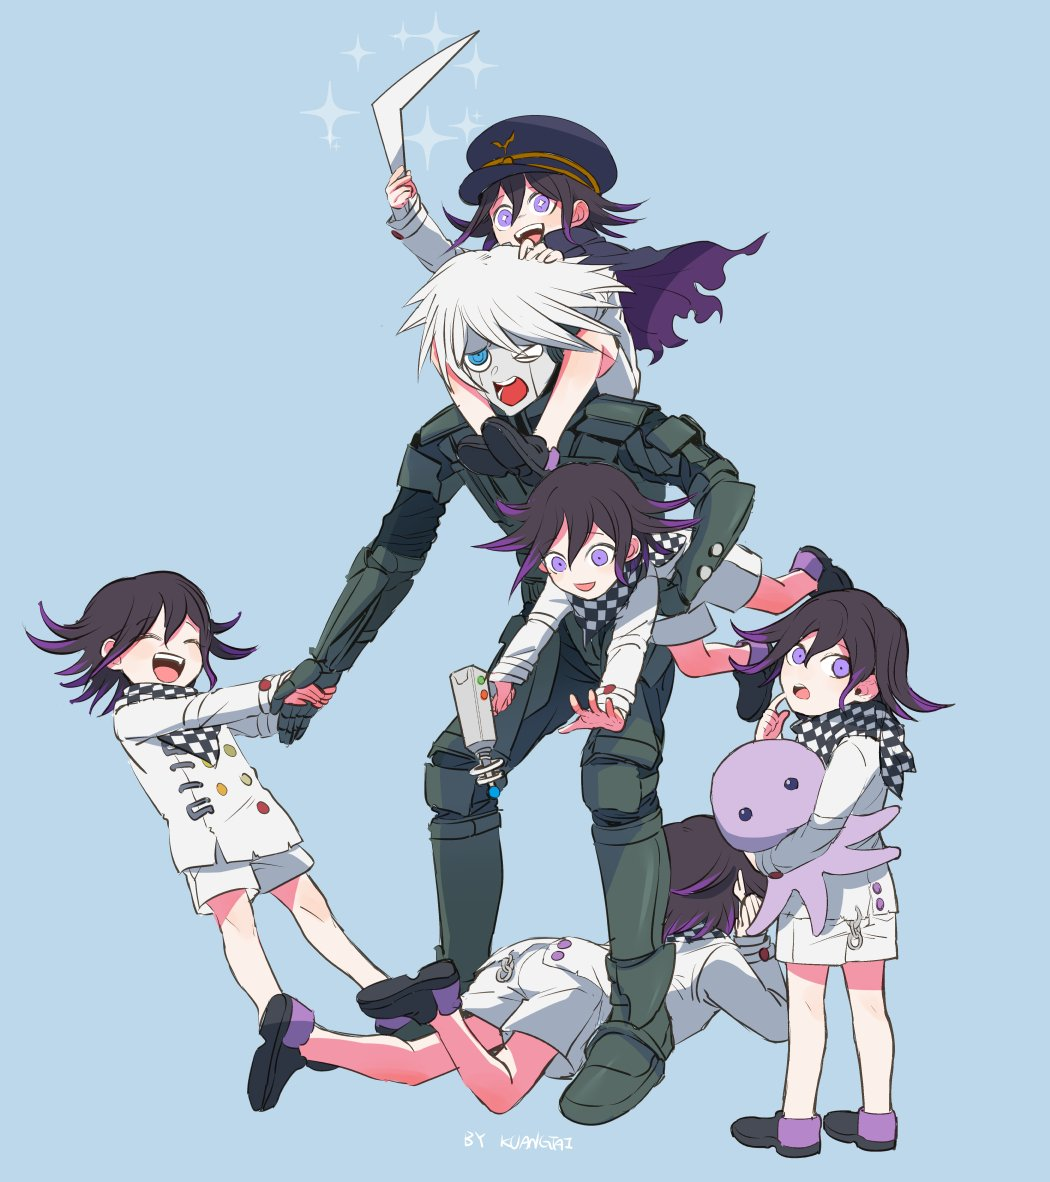 6+boys ahoge_removed android artist_name black_cape black_footwear black_hair blue_eyes braid cape checkered checkered_scarf child closed_eyes commentary_request contrapposto danganronpa_(series) danganronpa_v3:_killing_harmony double-breasted green_background gun hand_grab happy hat holding holding_another holding_gun holding_stuffed_toy holding_weapon keebo kuangtai_(amami_ryoko) leaning_forward looking_at_viewer lying male_focus multiple_boys multiple_persona on_shoulder on_stomach open_mouth ouma_kokichi peaked_cap pink_eyes power_armor pulling purple_hair scarf shoes short_hair shorts simple_background straitjacket stuffed_animal stuffed_octopus stuffed_toy torn_cape torn_clothes violet_eyes weapon white_hair white_shorts younger